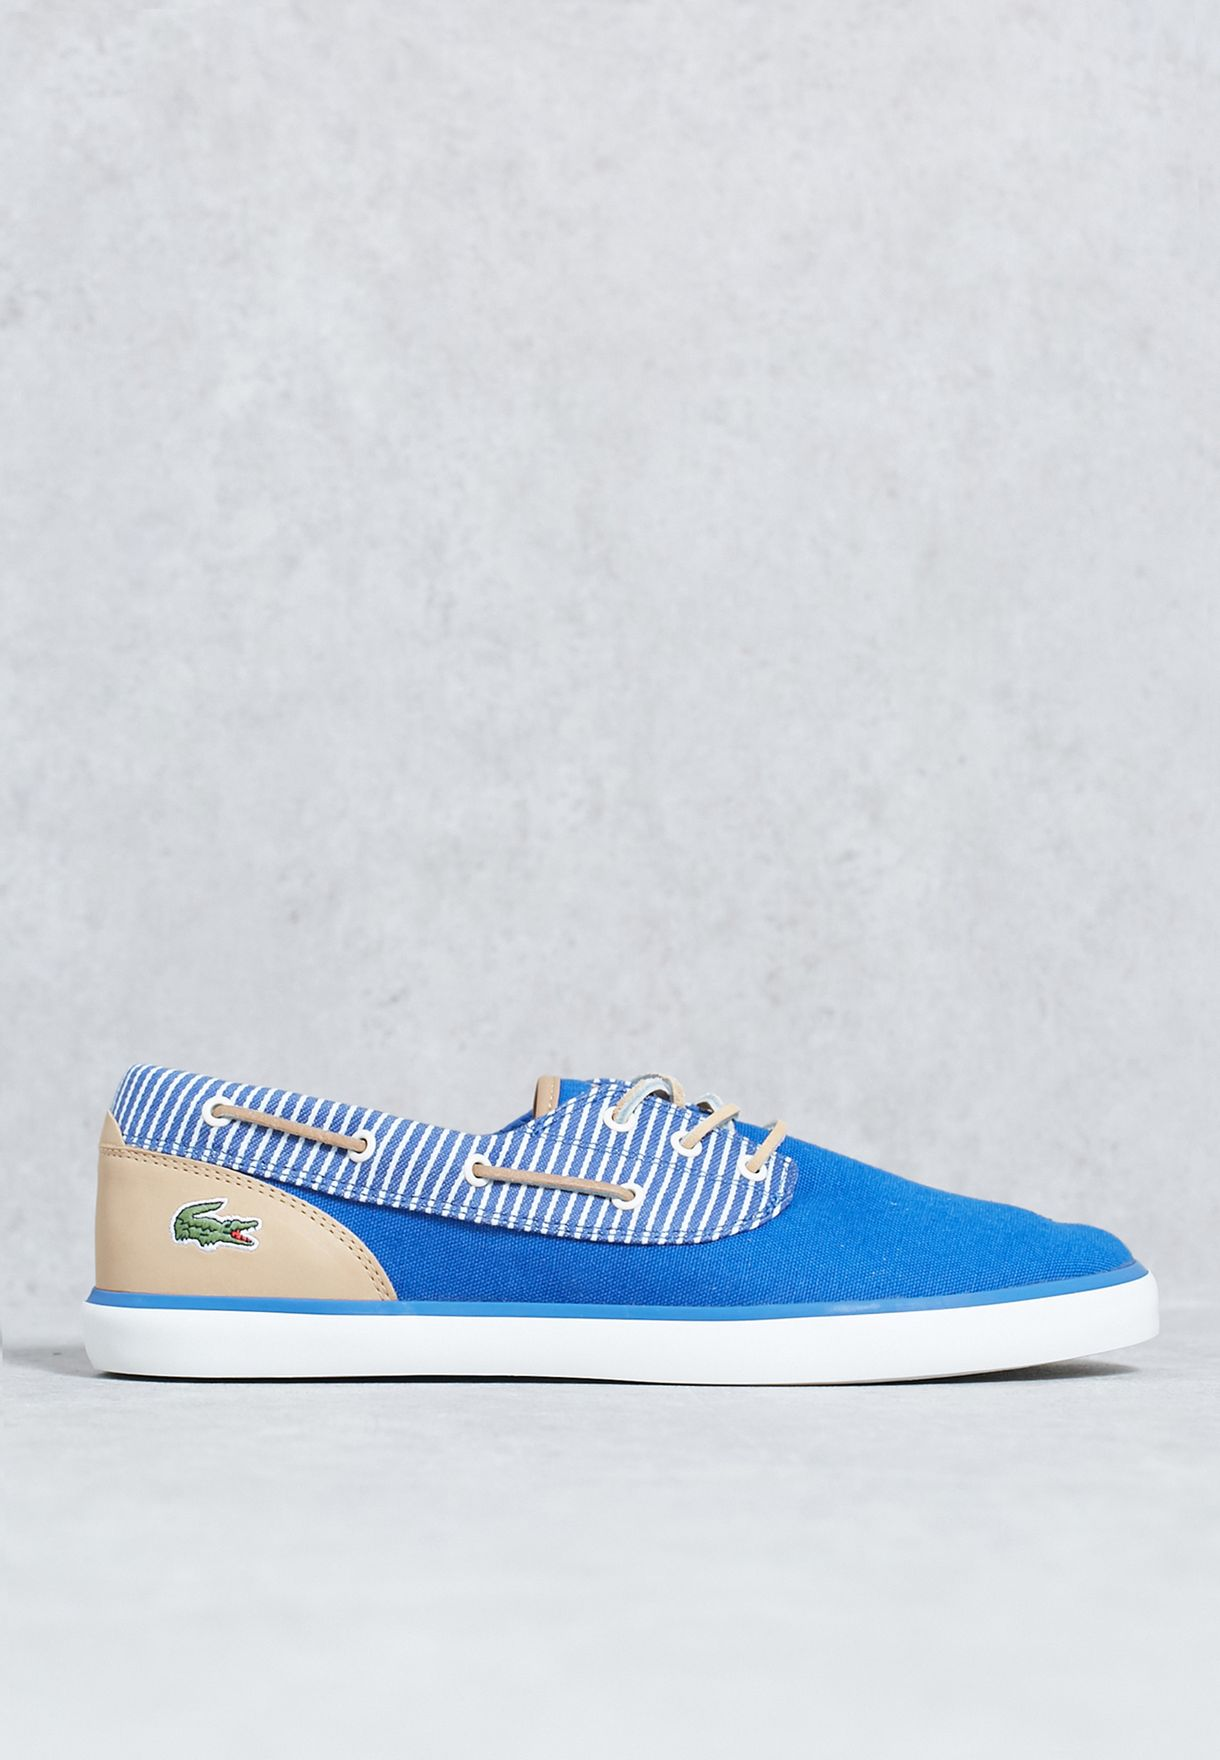 8e2b8f437 Shop Lacoste blue Jouer Deck 117 2 33CAM1080-125 for Men in UAE ...